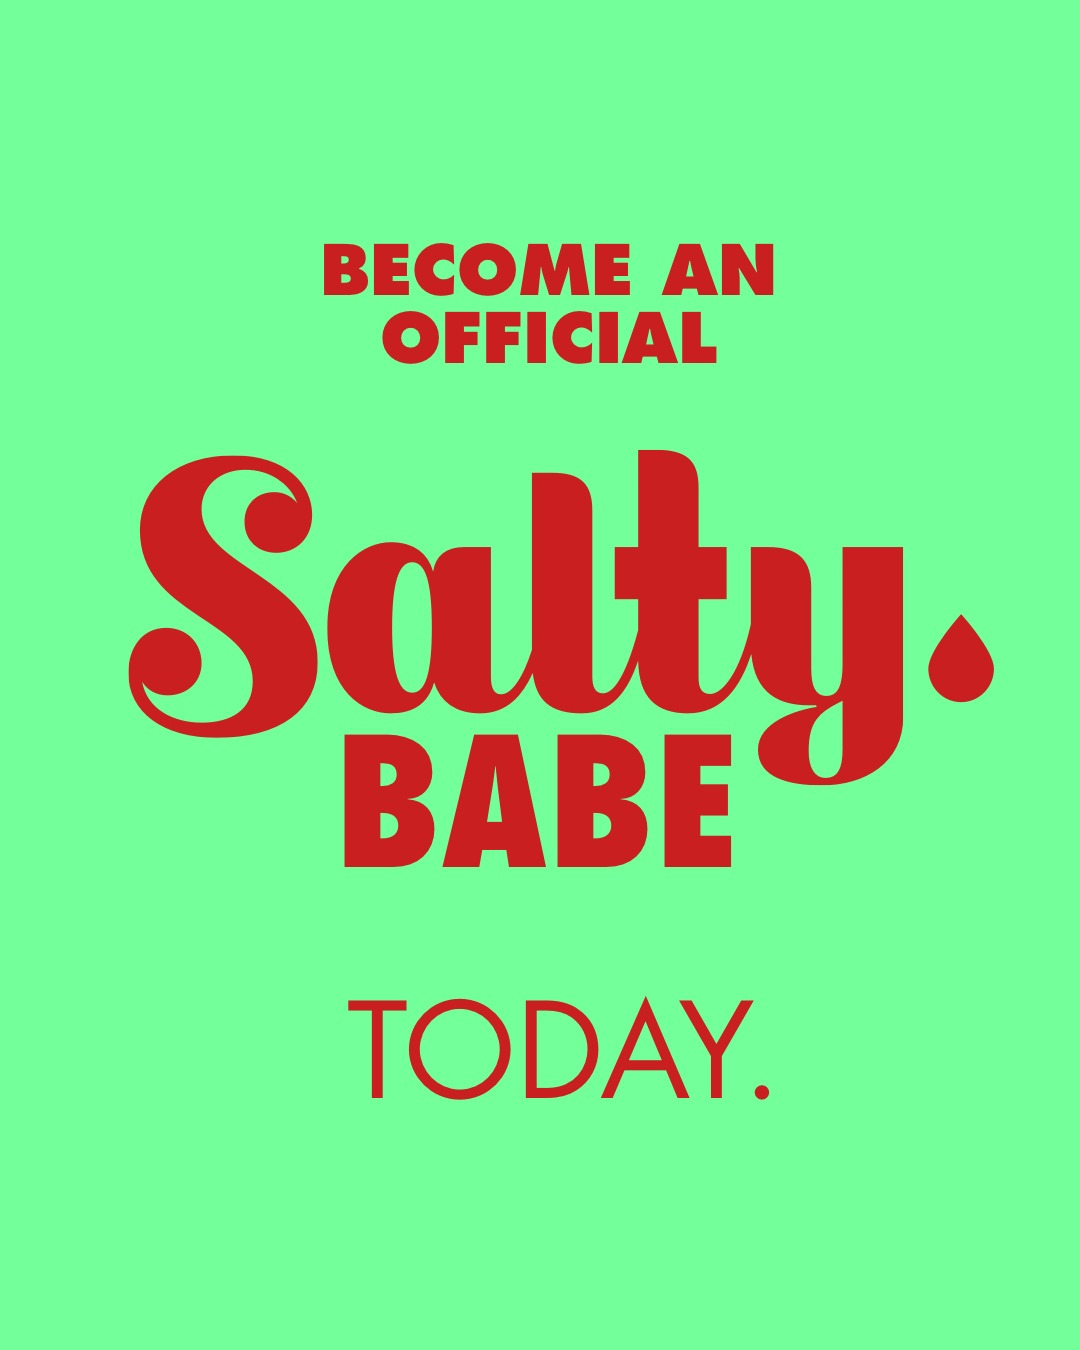 Become an Official Salty Babe Today.